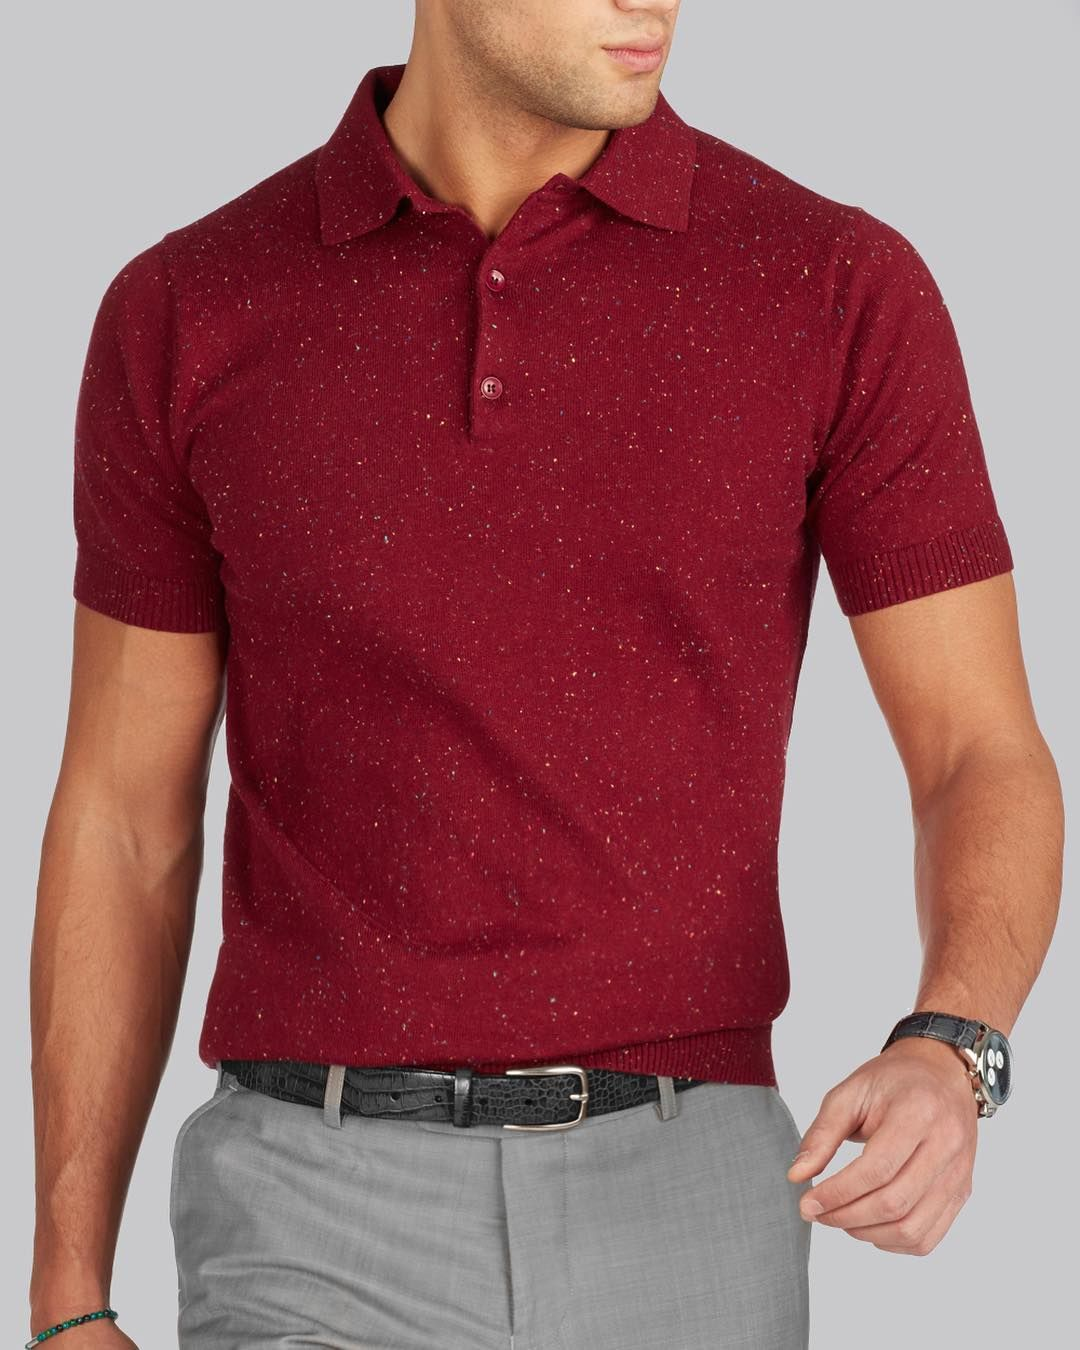 Short sleeve polo shirts, perfect for spring and summer ...